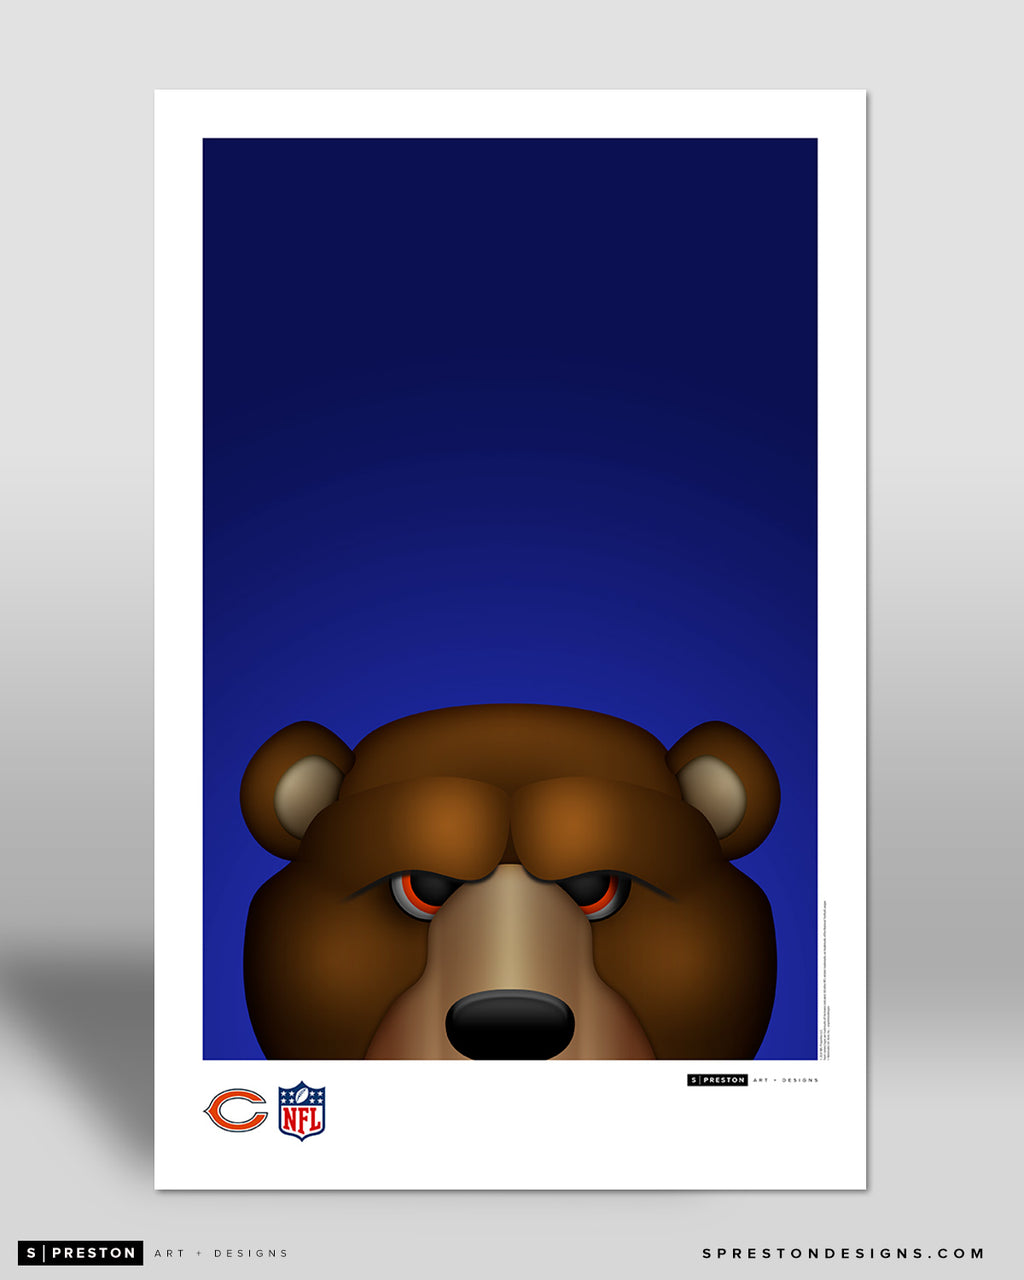 Minimalist Staley Da Bear Poster Print Chicago Bears - S Preston